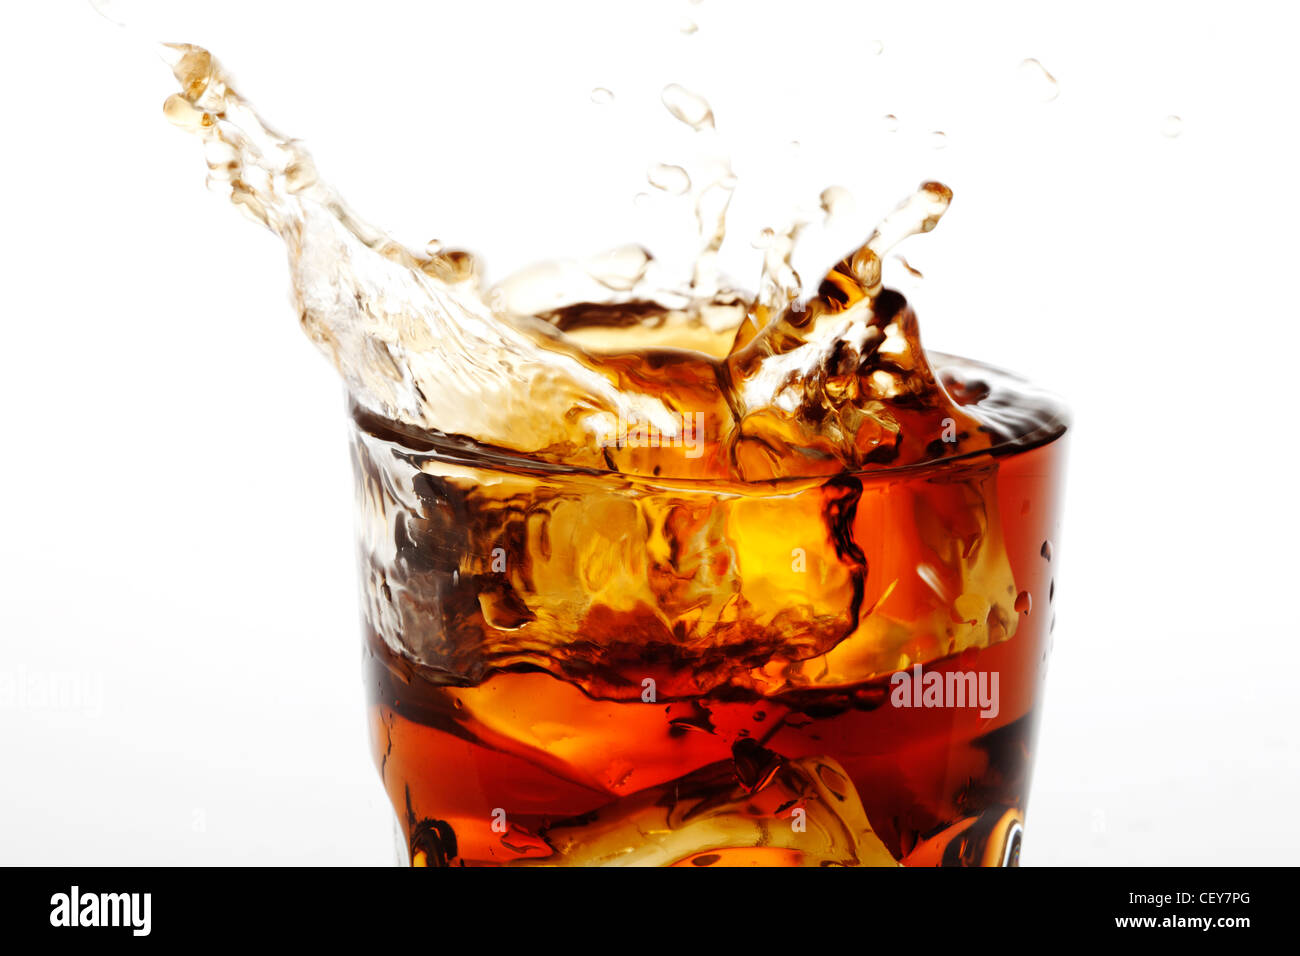 cola splash - Stock Image